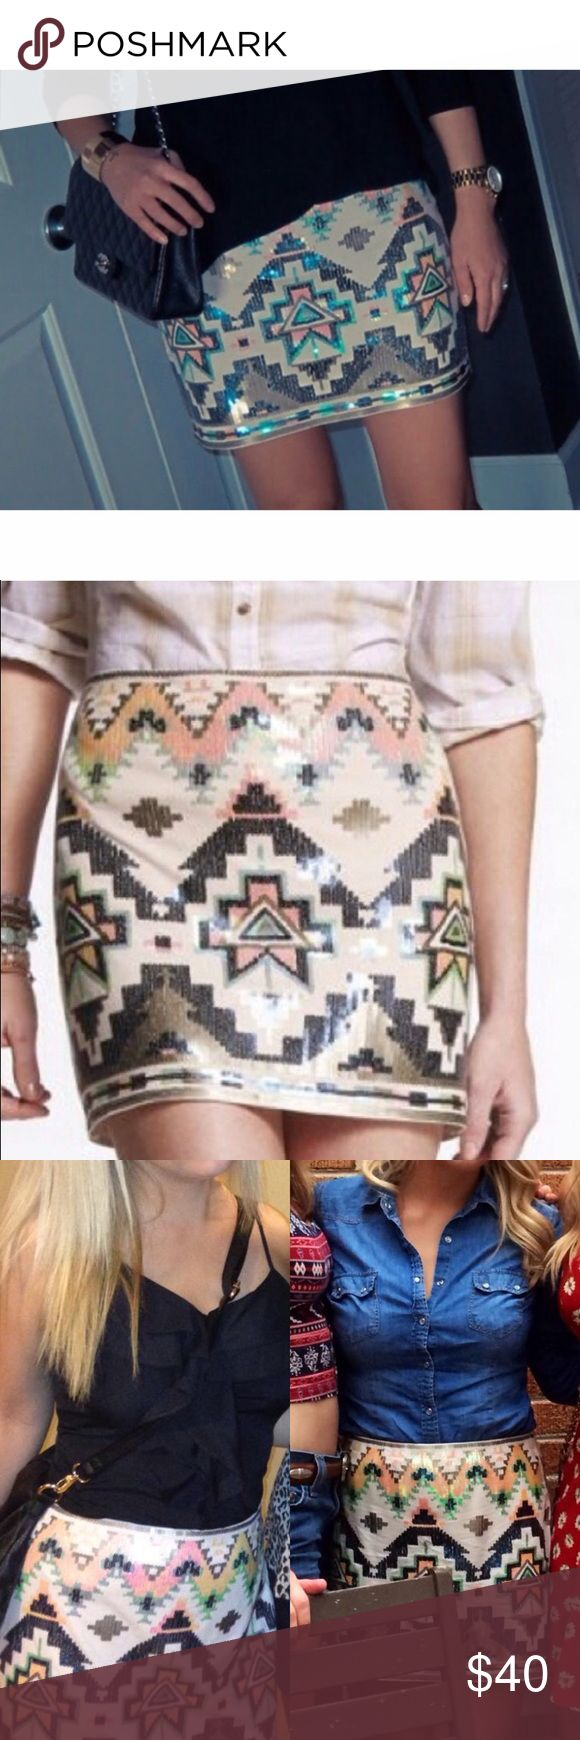 Sequins Mini Skirt Such a cute tribal mini skirt that can be styled in so many different ways! Express Skirts Mini